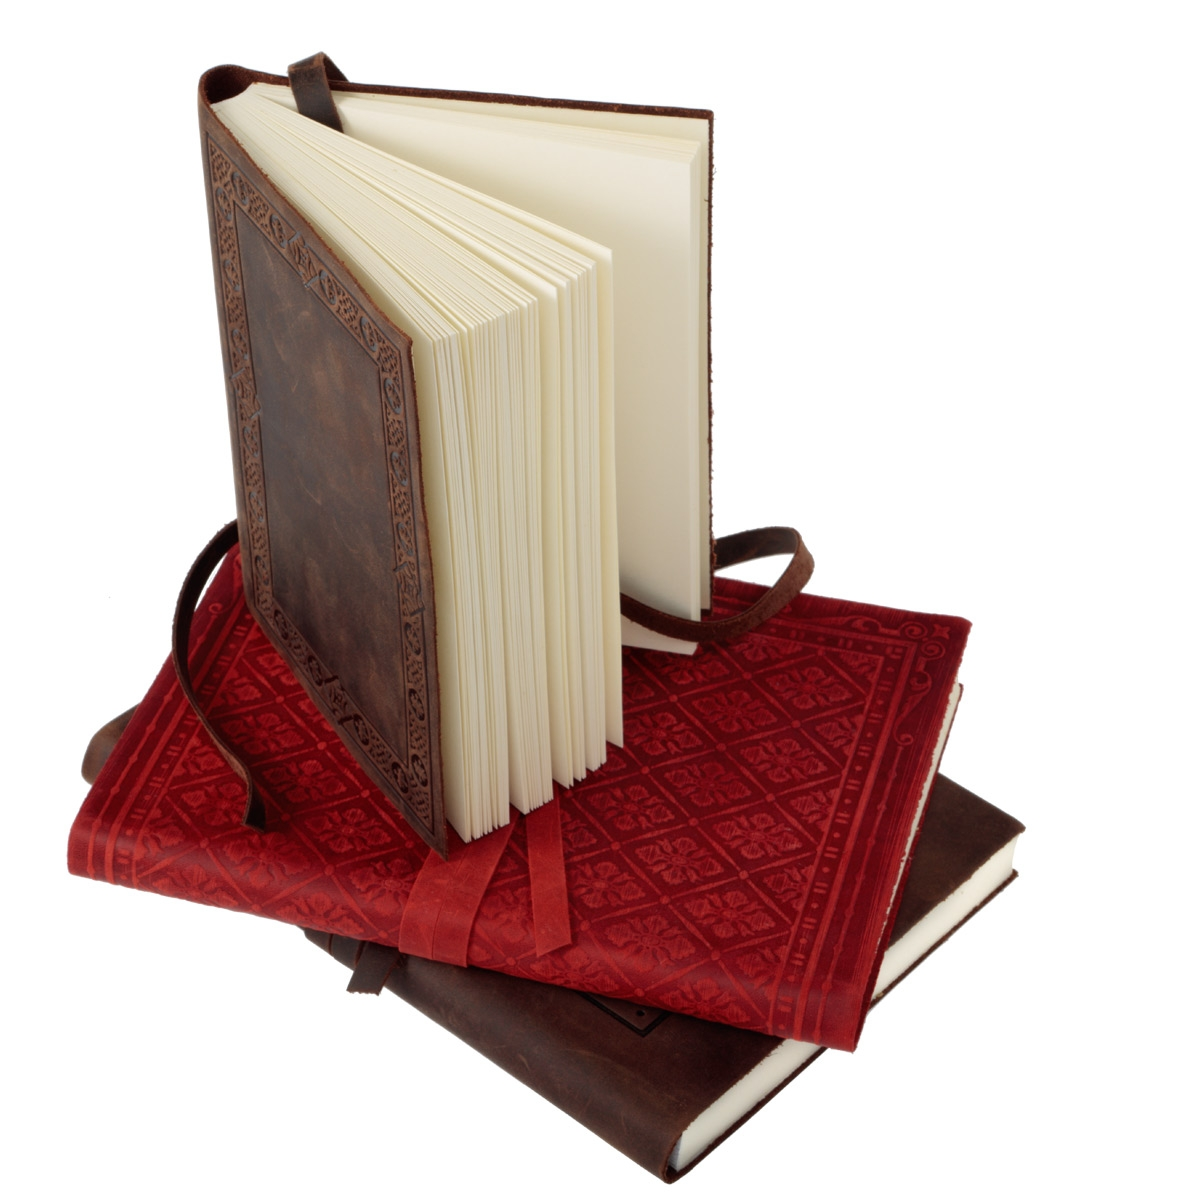 Old World Luxury Italian Leather Bound Soft Cover Sketch Books